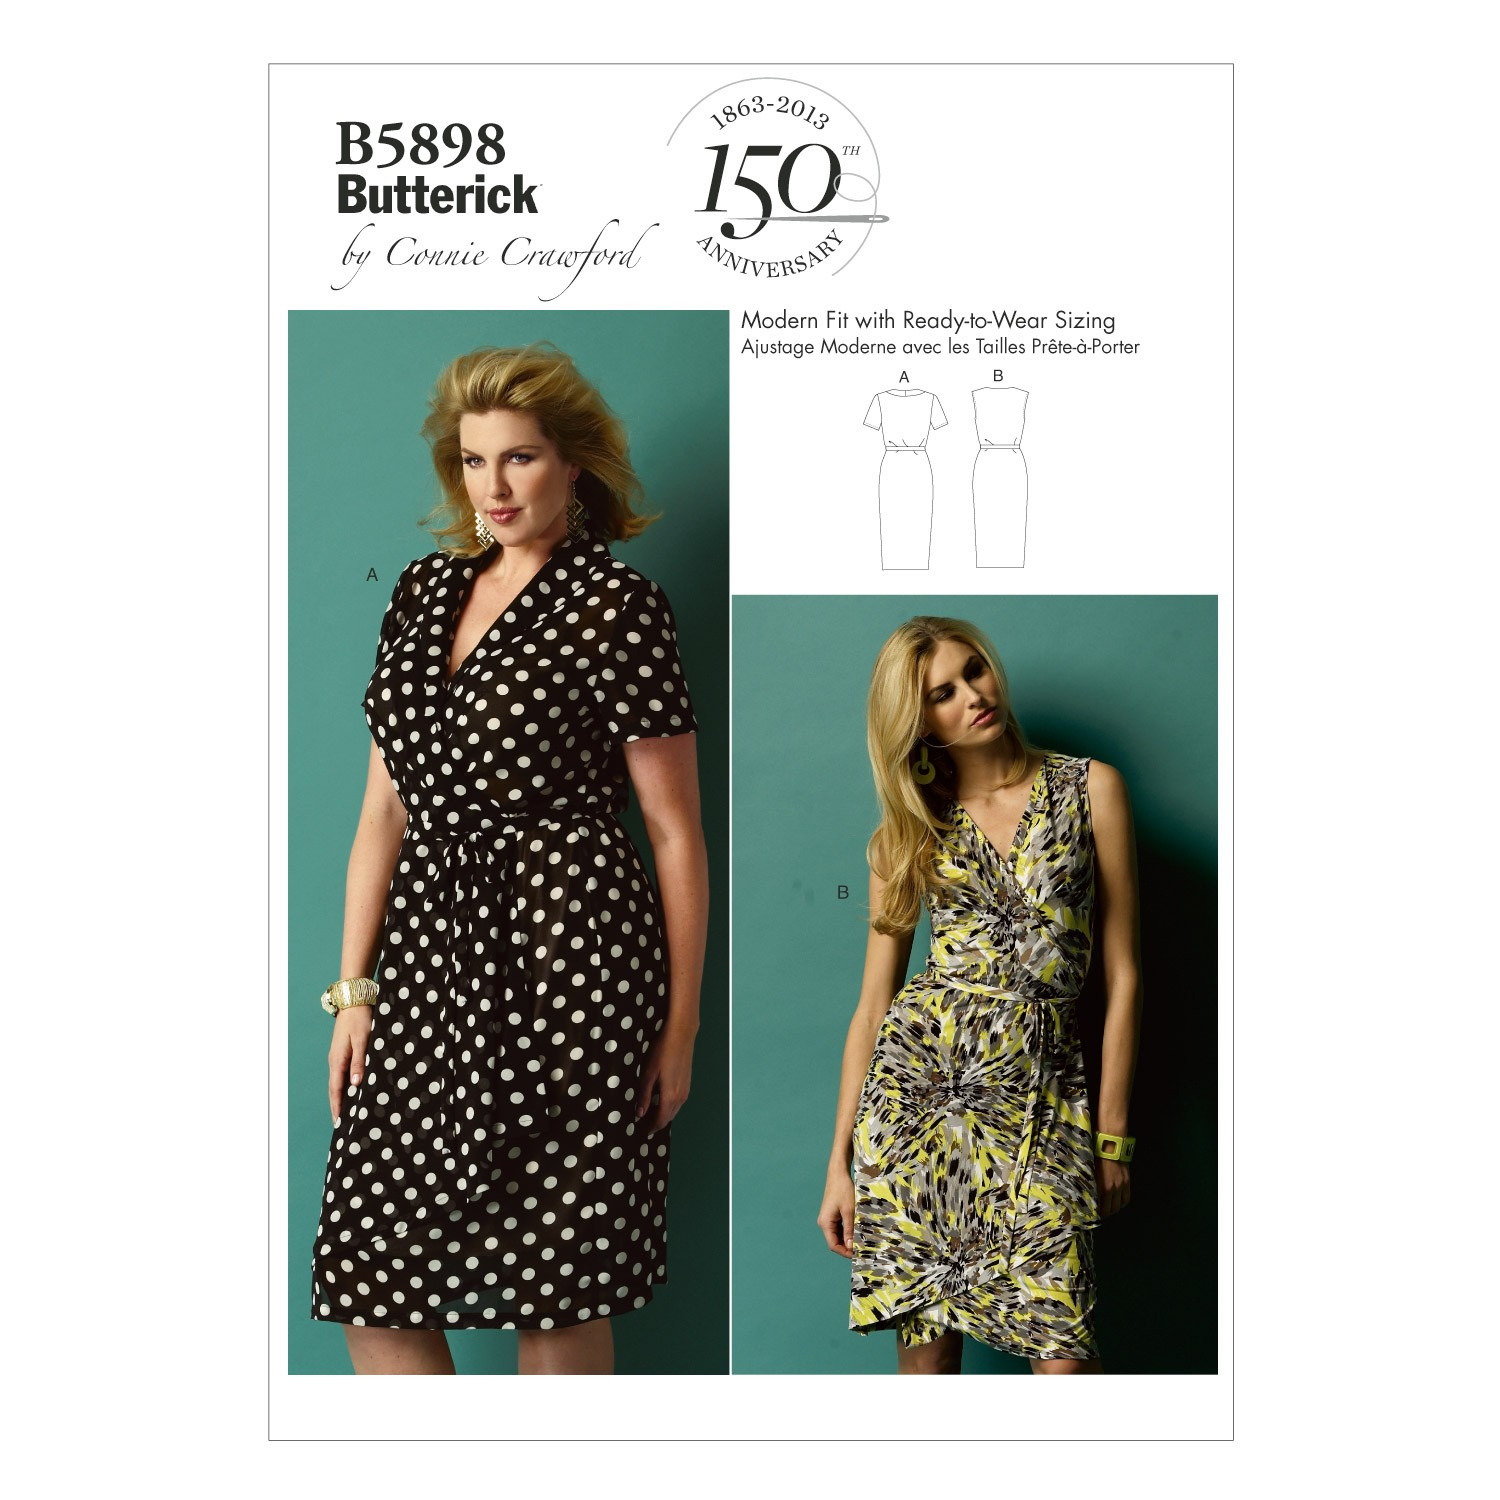 Butterick Sewing Pattern 5898 Misses' Loose Fitting Dress